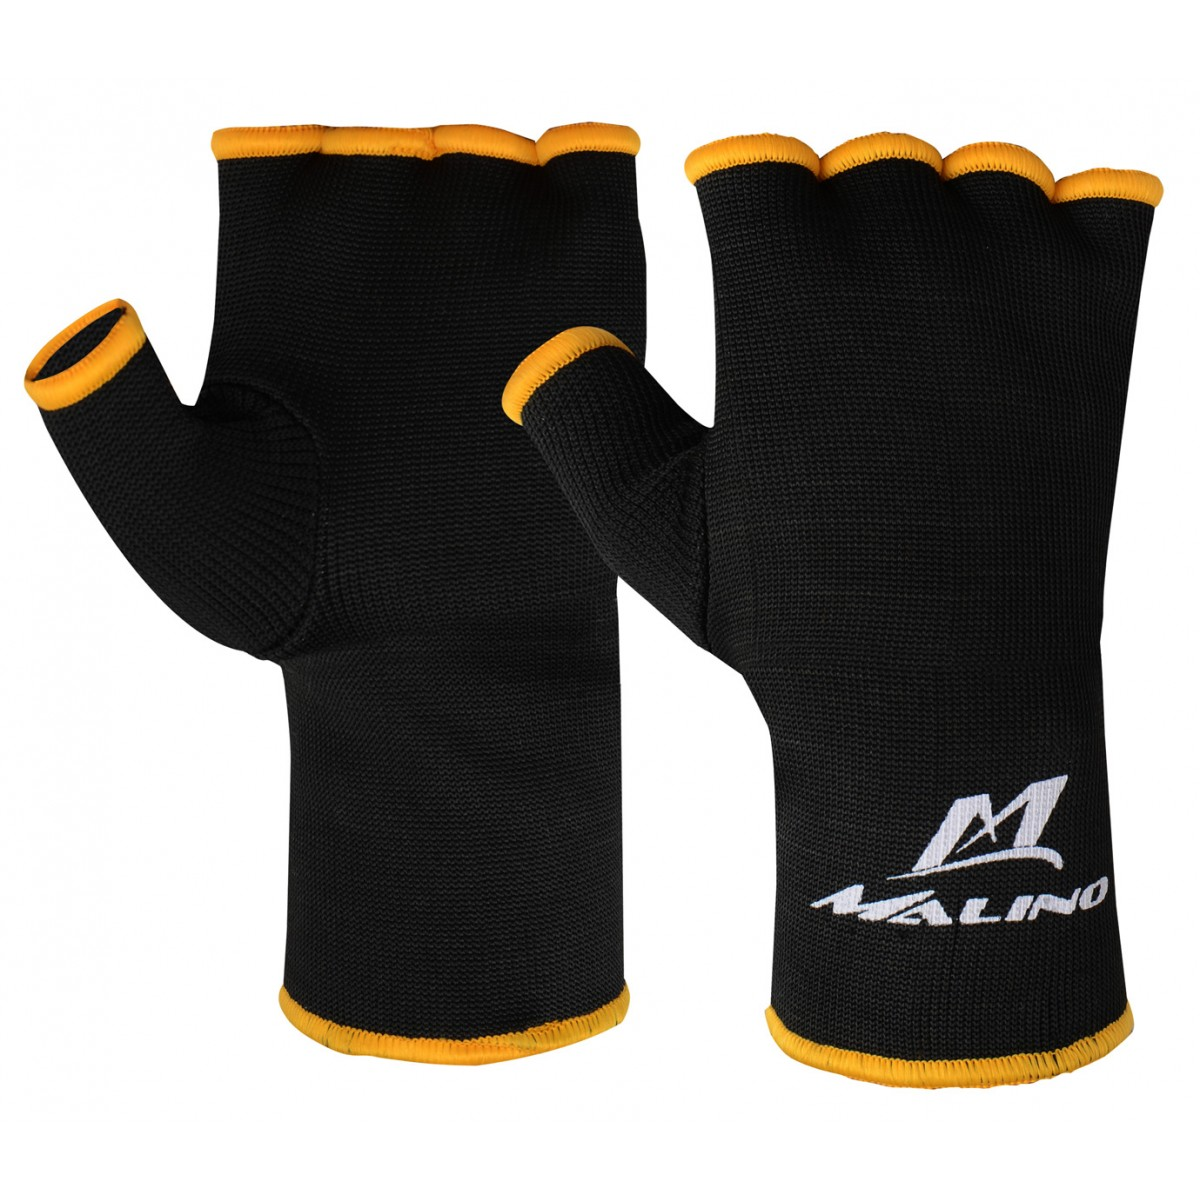 Malino Inner Hand Gloves with Thumbs Black-Orange